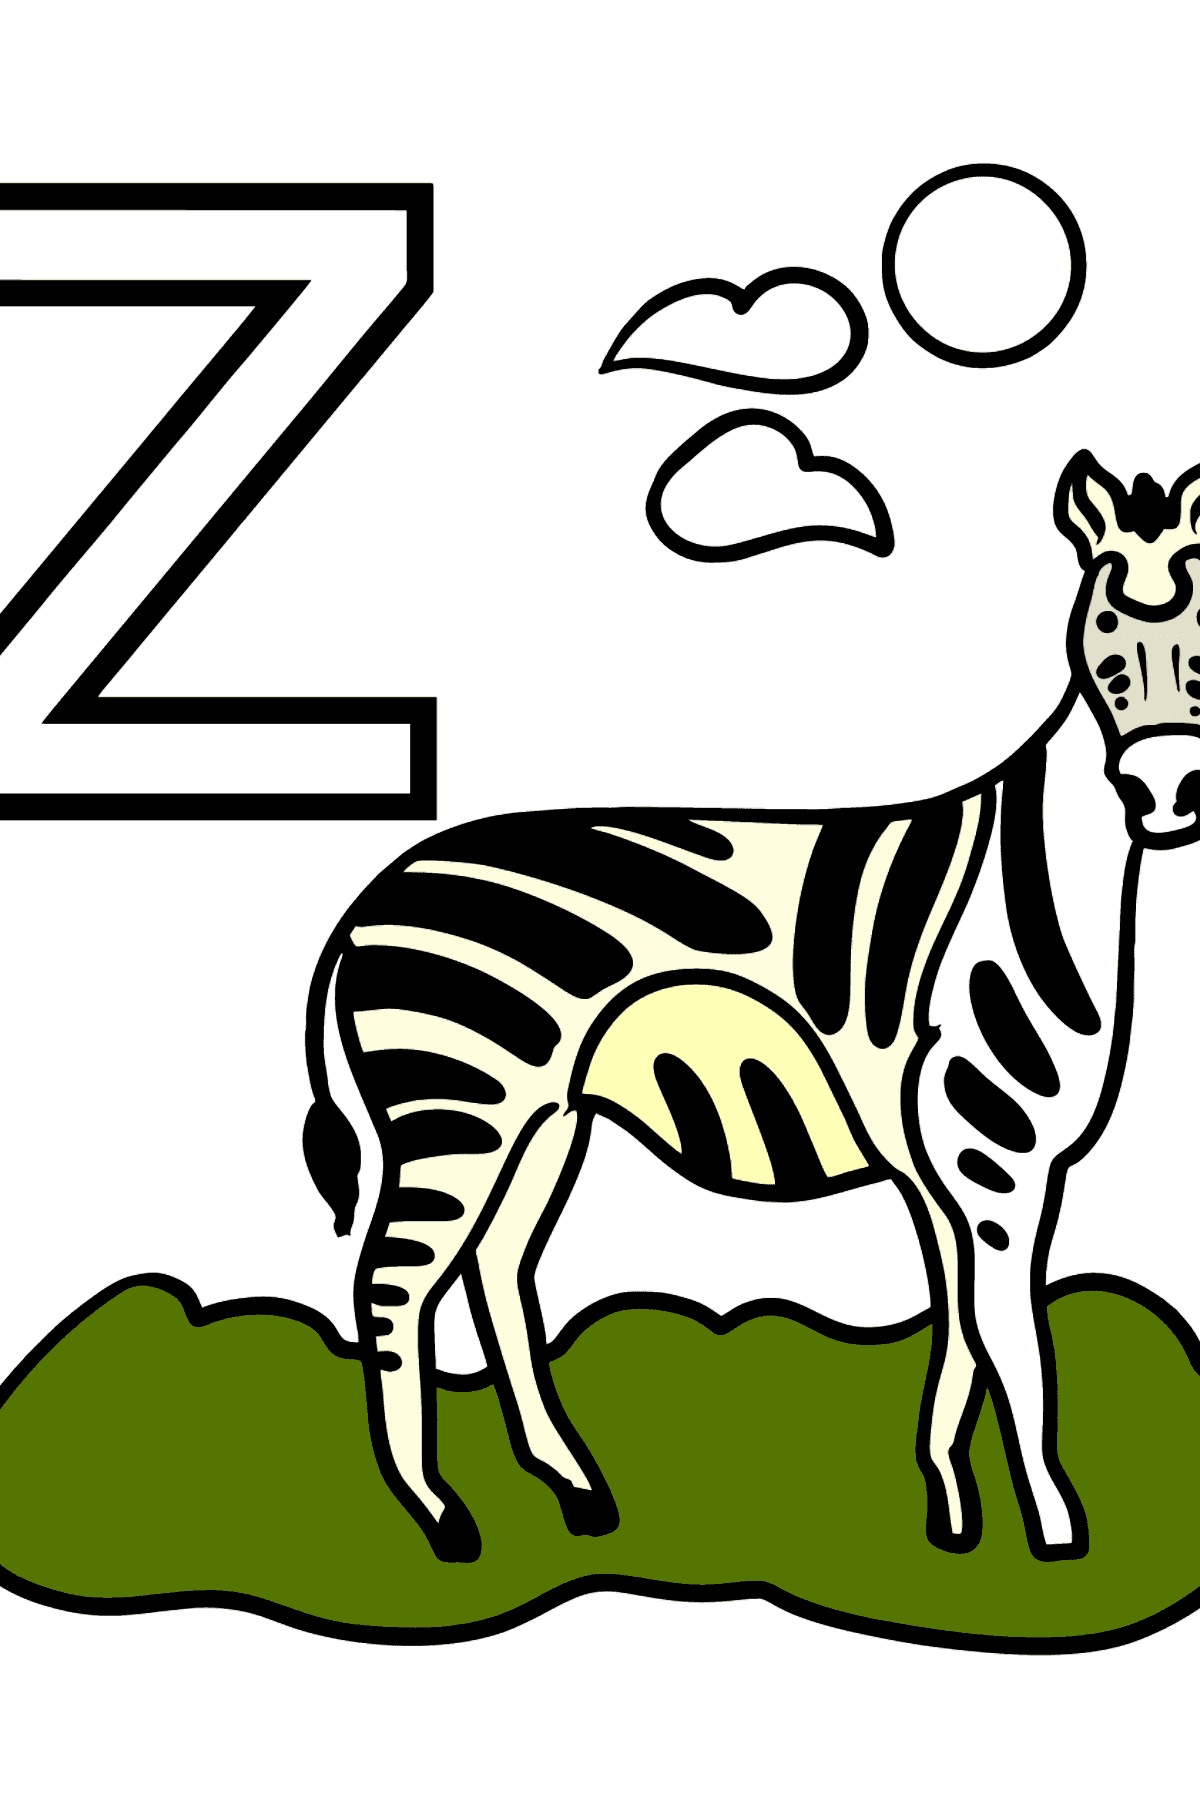 Portuguese Letter Z coloring pages - ZEBRA - Coloring Pages for Kids